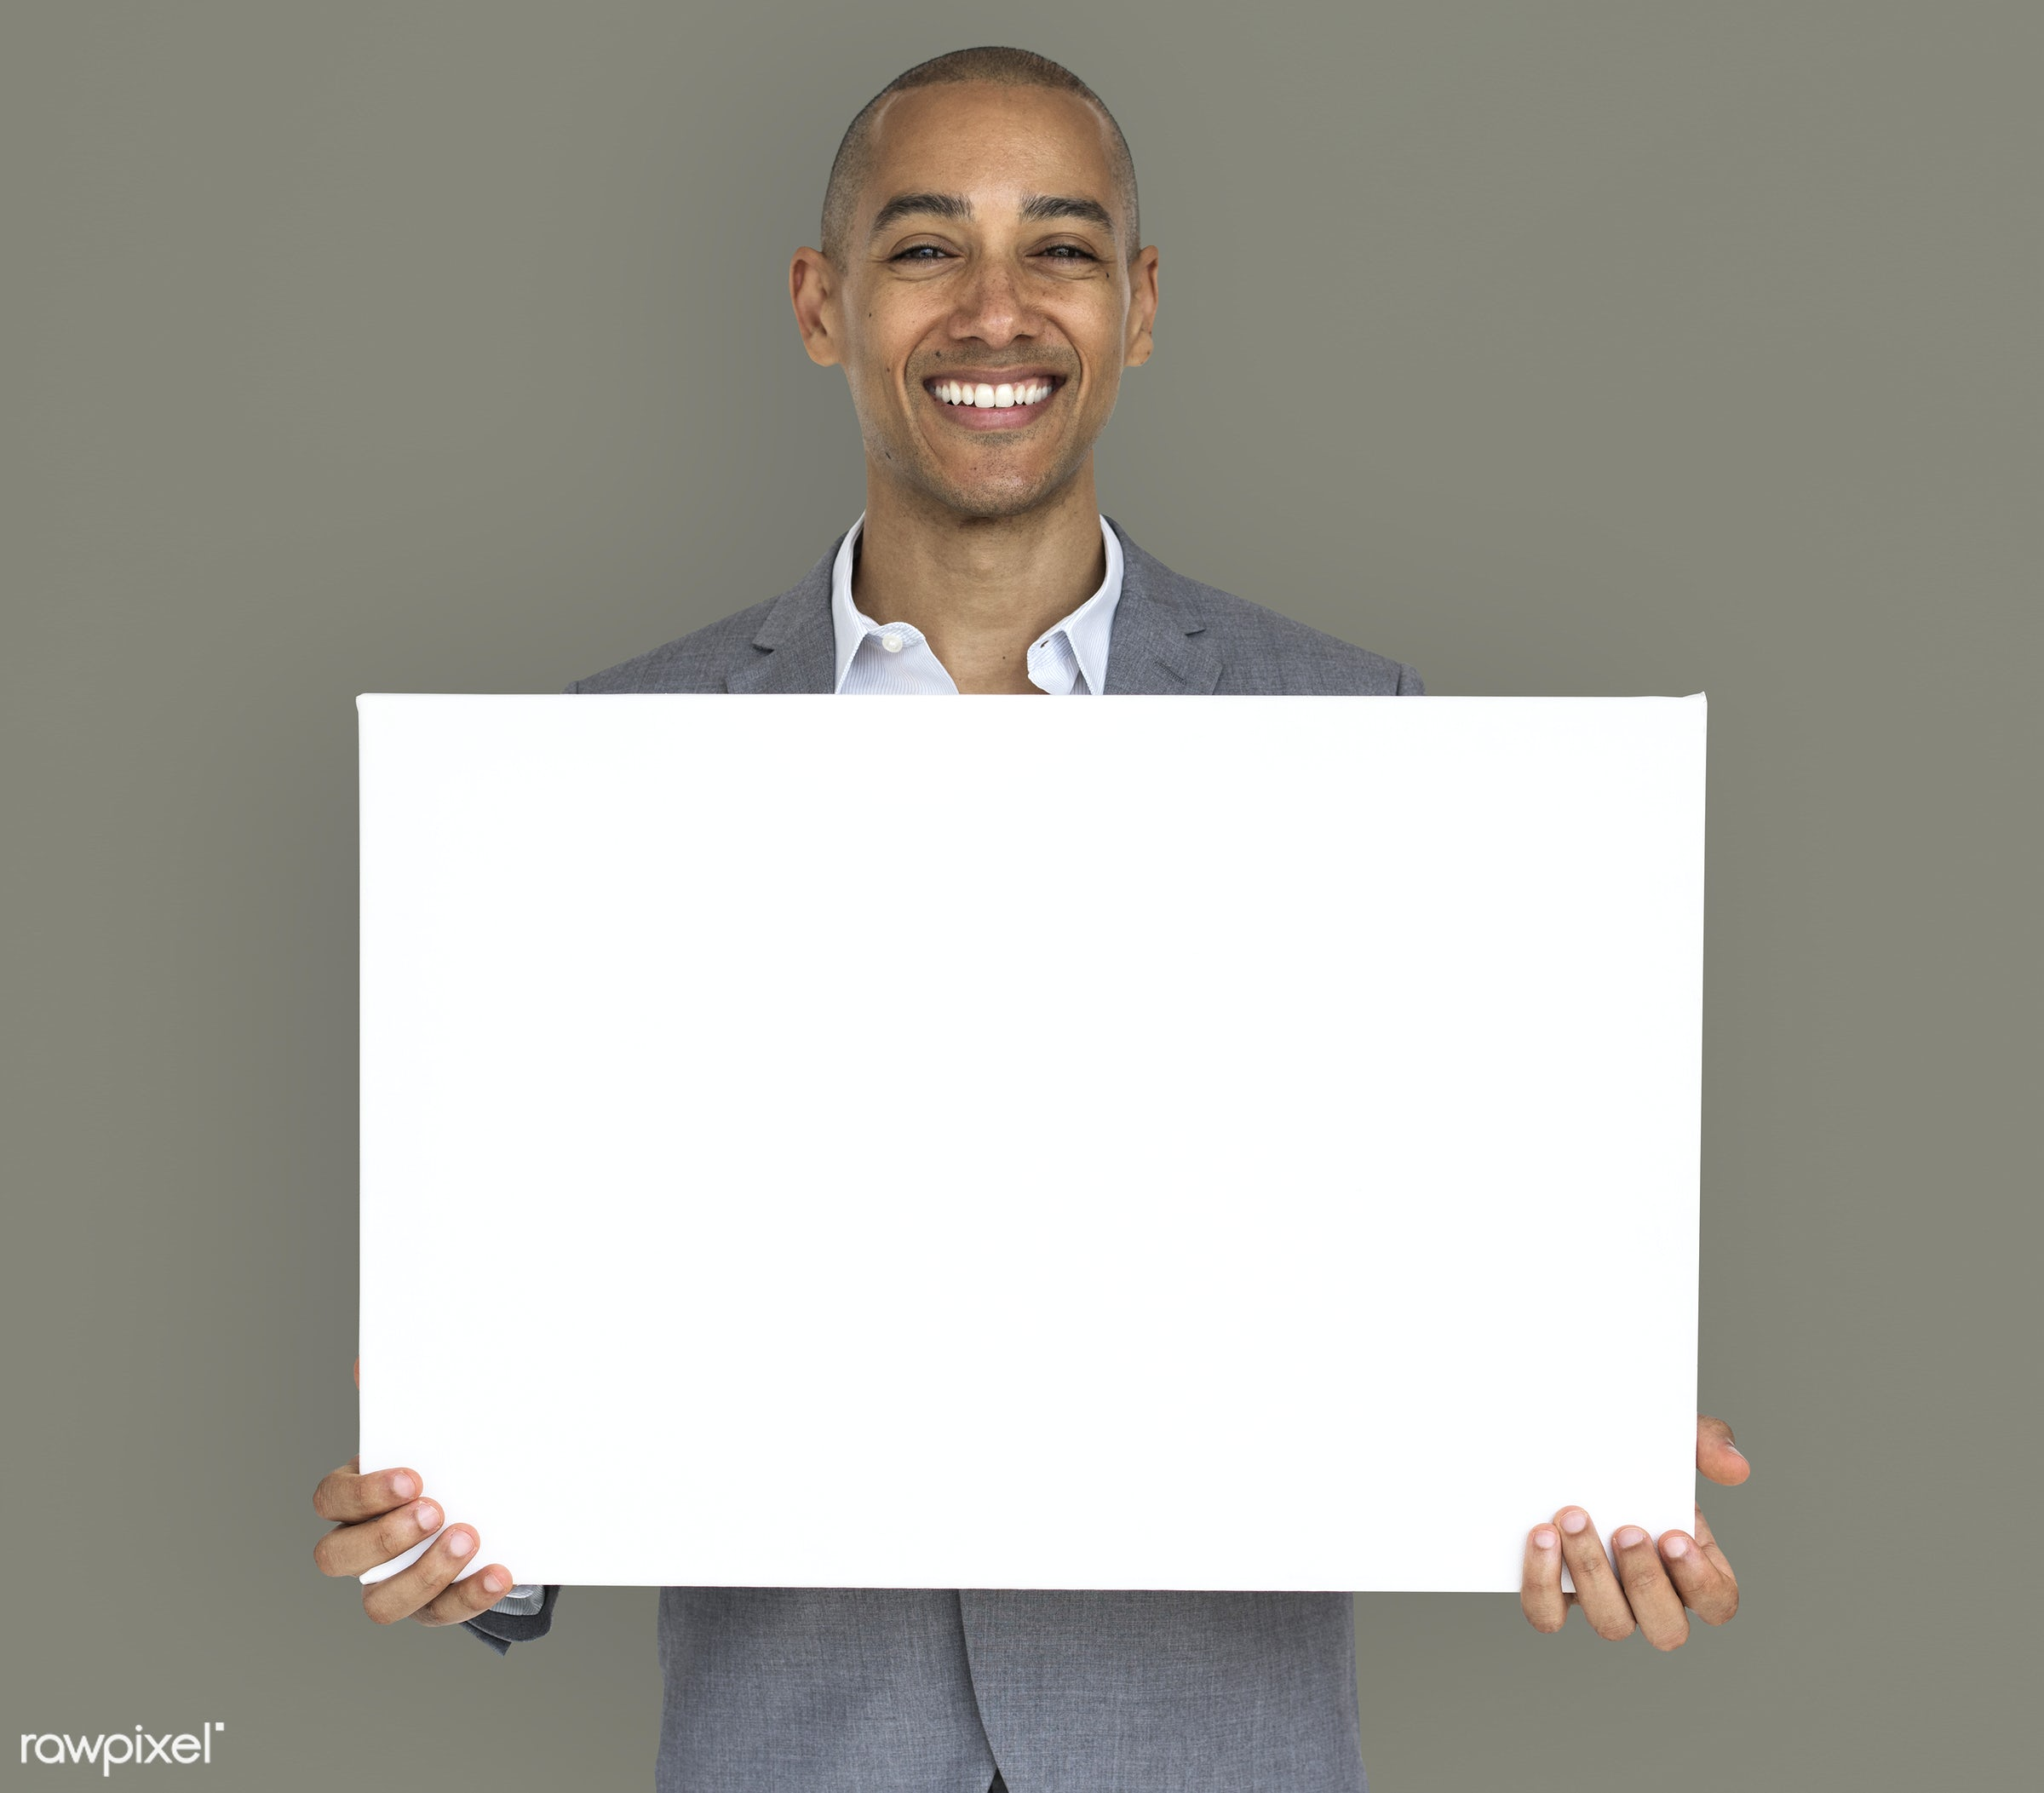 expression, studio, copy space, person, holding, joy, people, business, placard, businessman, happy, grey, mixed race, smile...